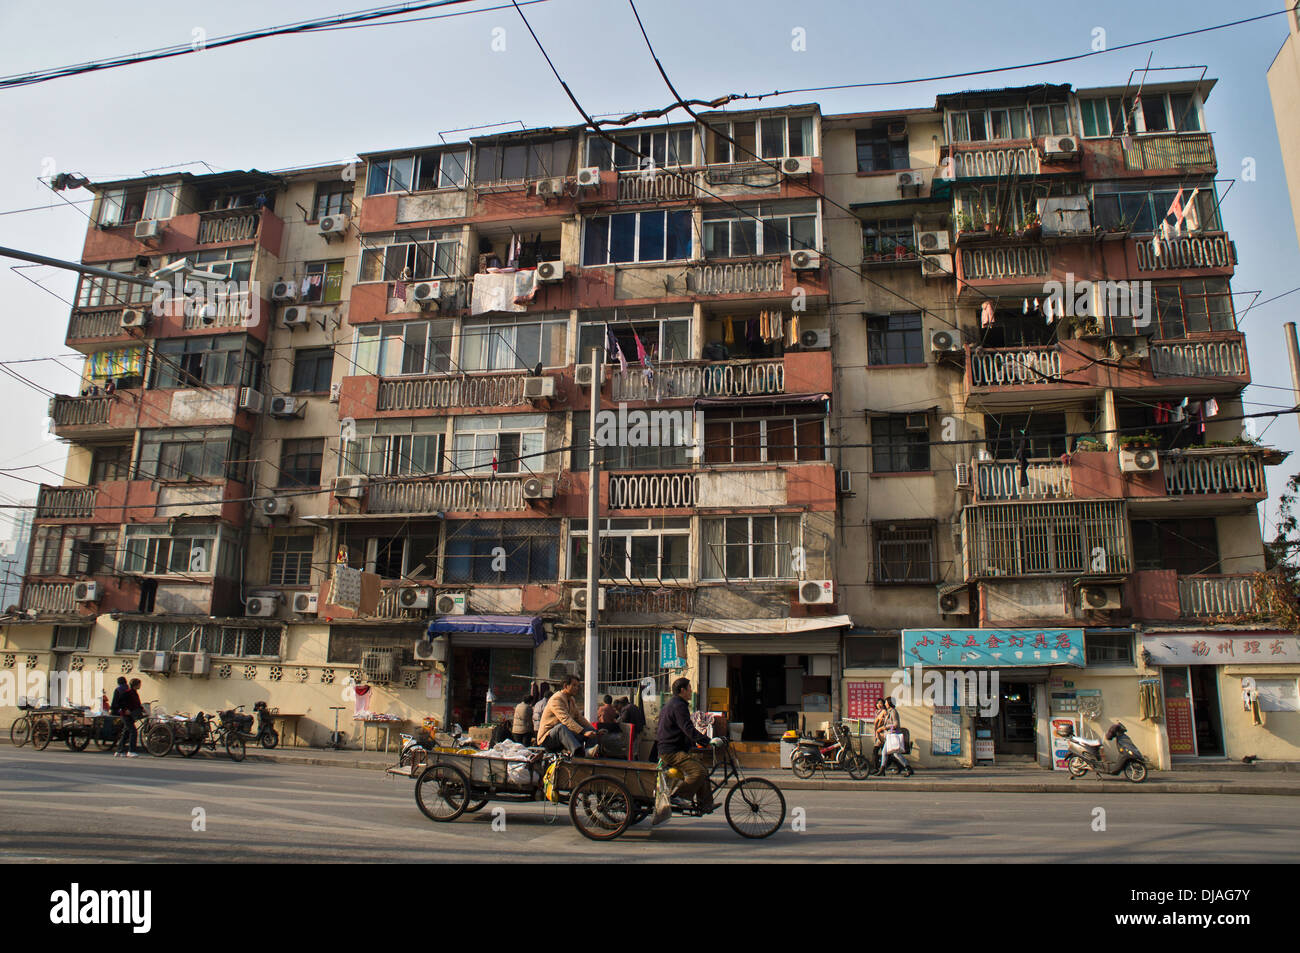 old housing in shanghai stockfotos old housing in shanghai bilder alamy. Black Bedroom Furniture Sets. Home Design Ideas